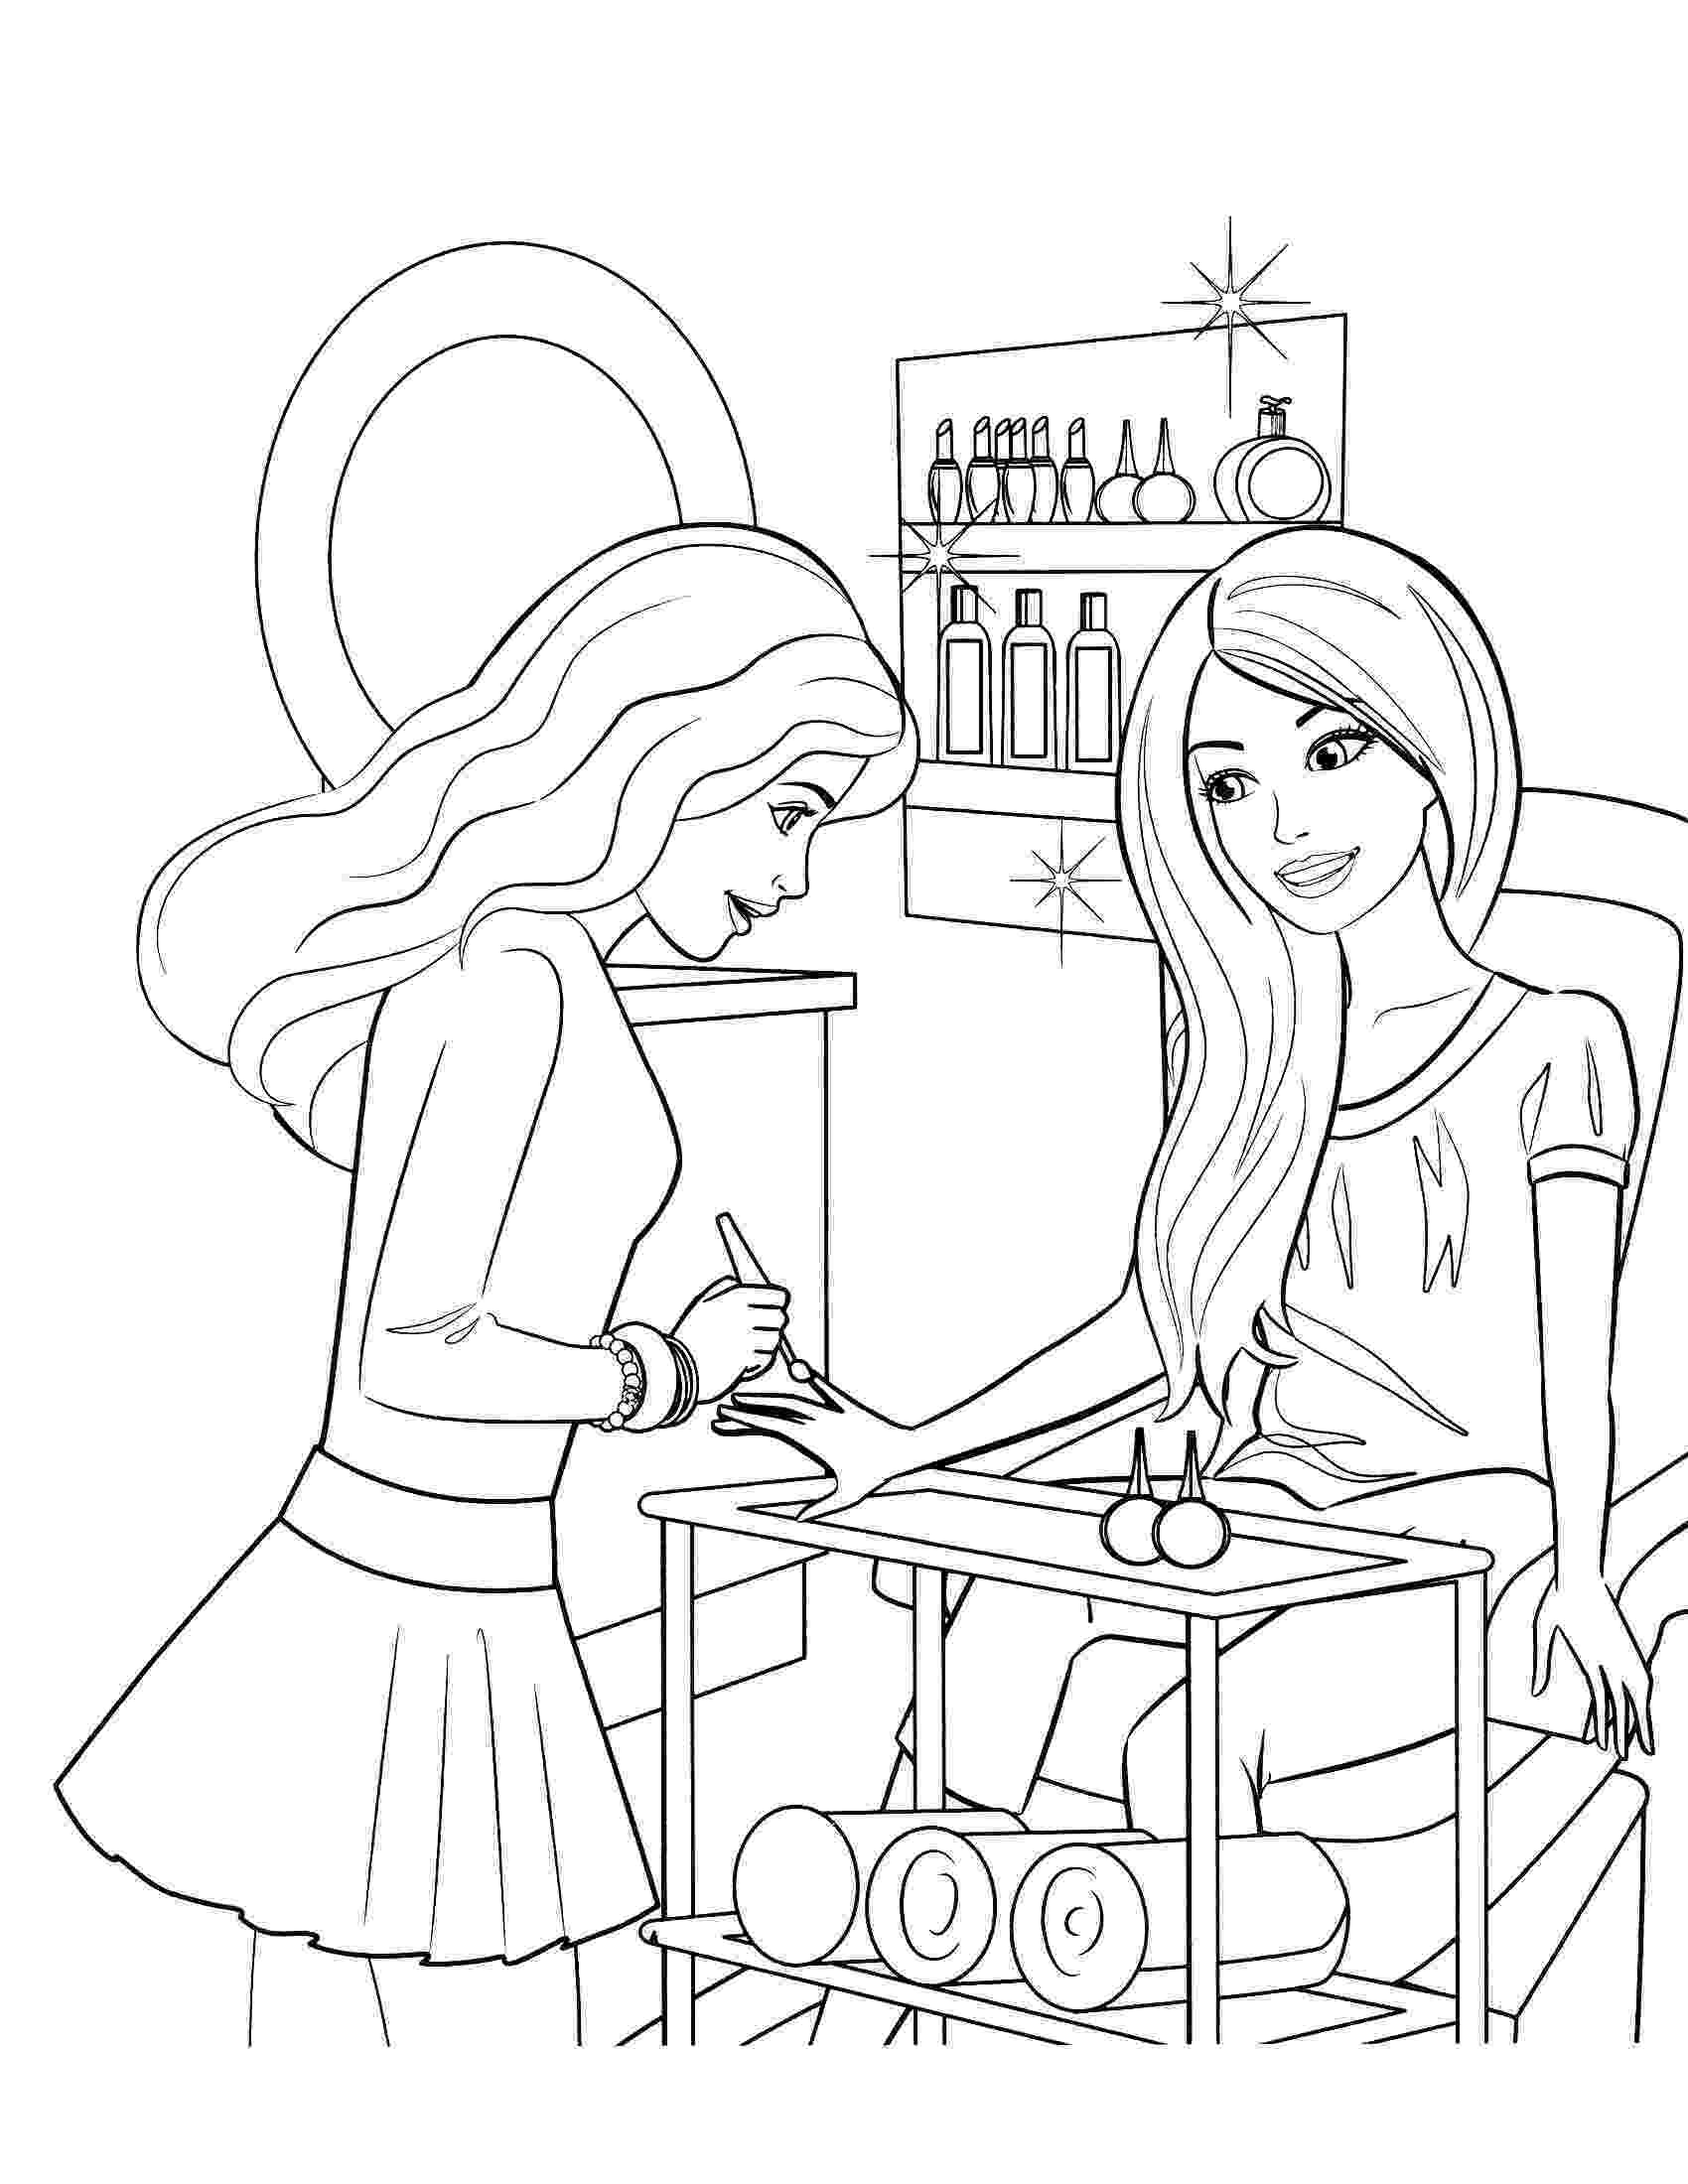 barbie doll pictures to color free printable barbie coloring pages for kids barbie barbie color pictures doll to